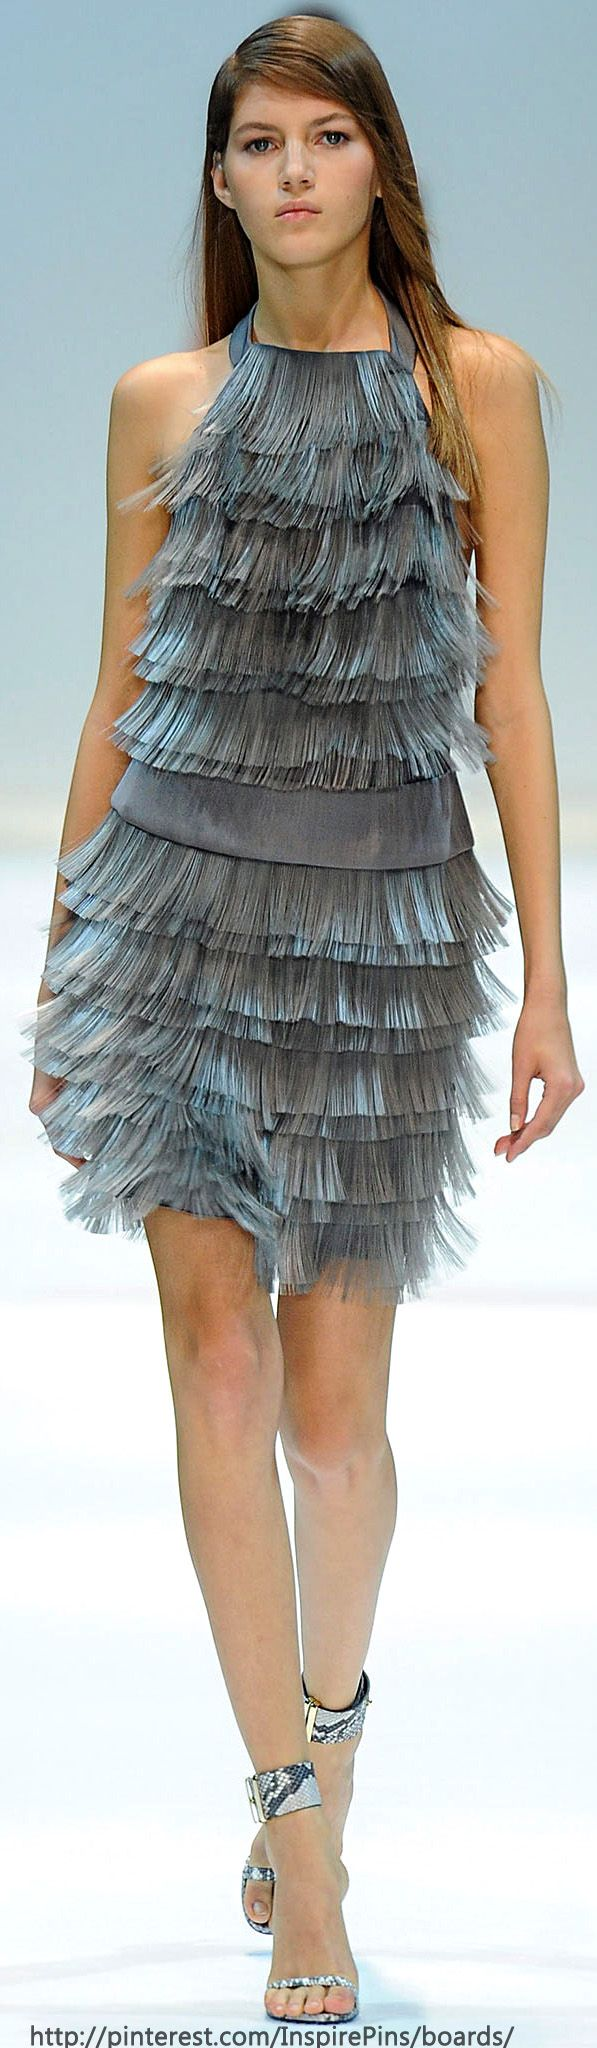 It so great how this dress moves...even in a still photo.... great color and shape. #wow Spring 2014 Ready-to-Wear Guy Laroche